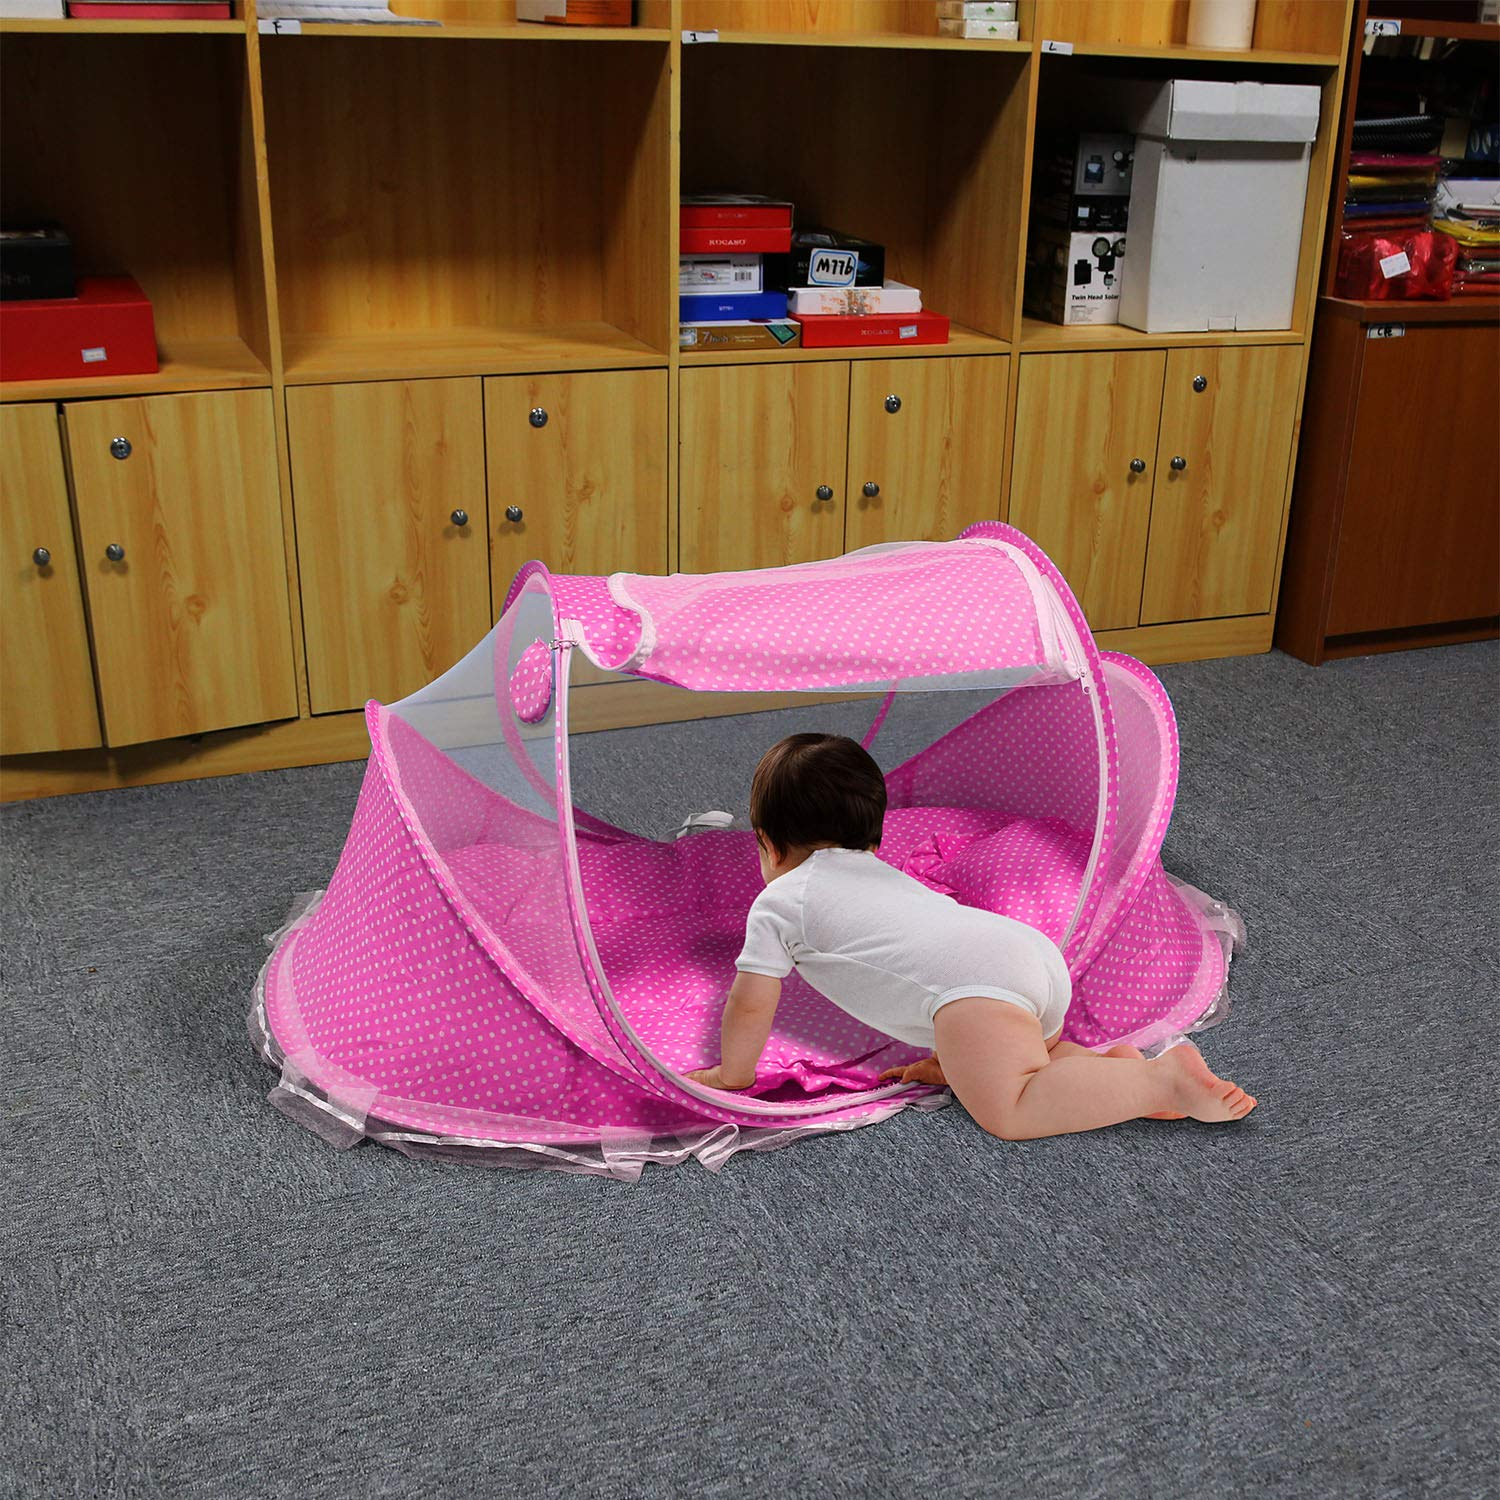 Mattress Pillow Music Box Mesh Bag Portable Sun Shelters Infant Toddlers Children Beach Travel Crib- Pink GPCT Foldable Baby Mosquito Travel Net Tent Keeps Insects Out Includes Mosquito Tent